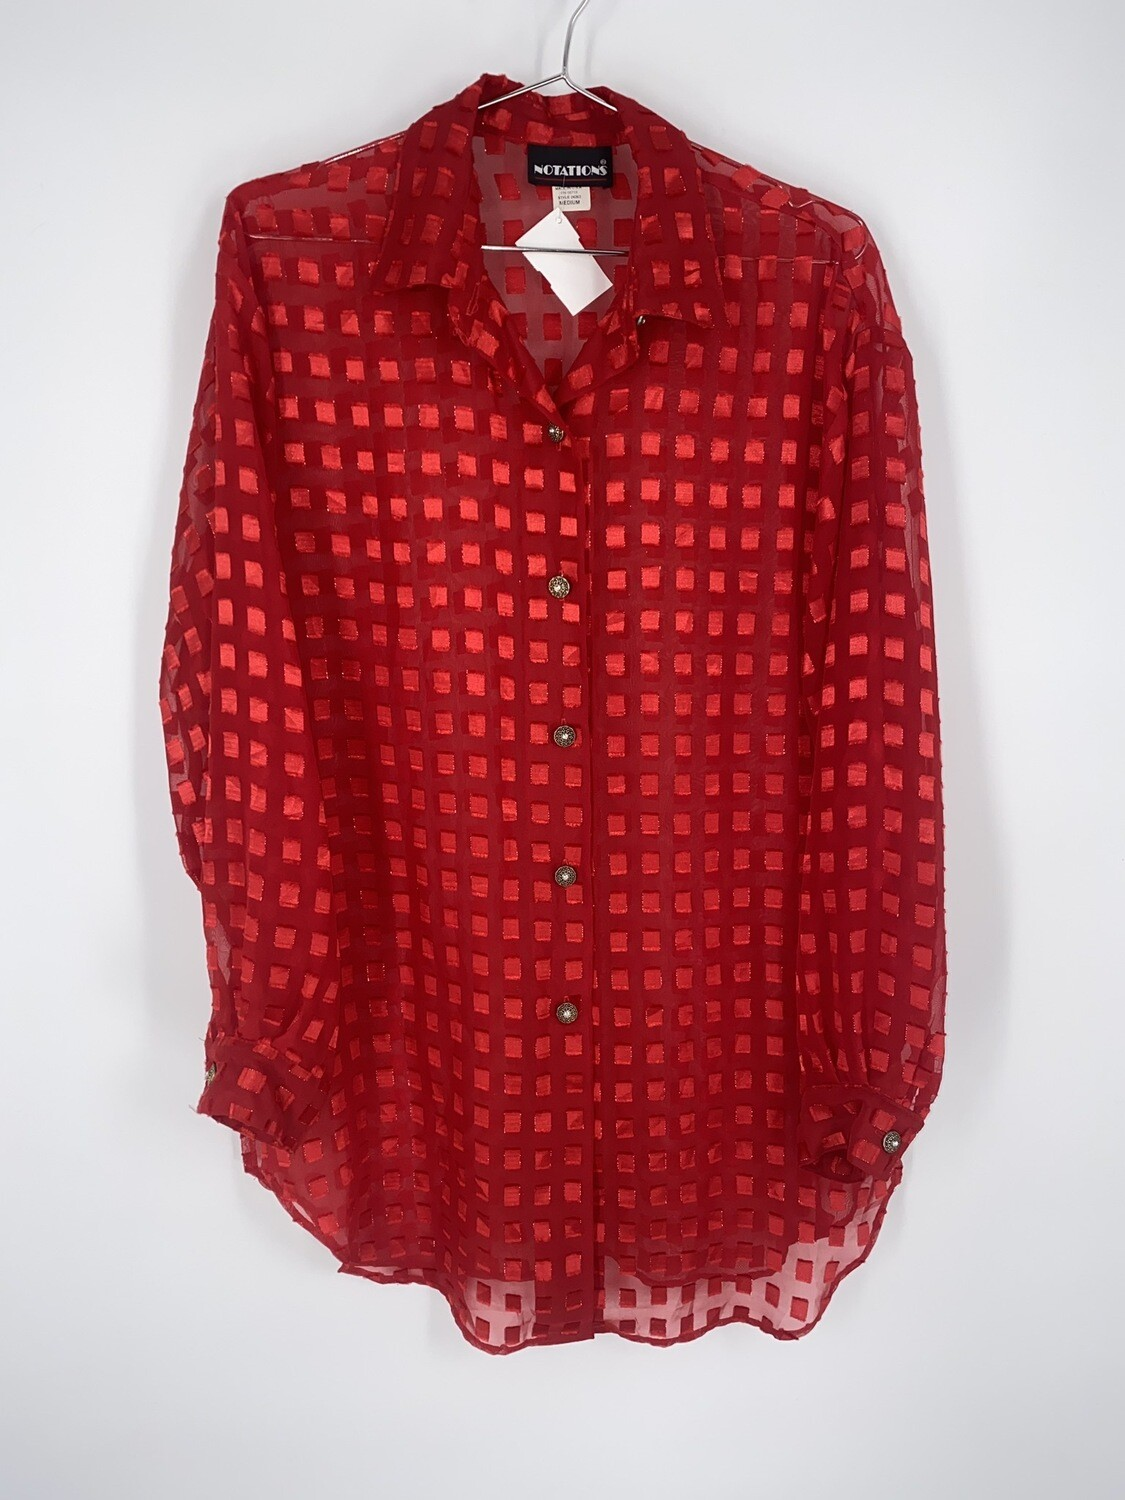 Sheer Red Square Motif Button Up Size M